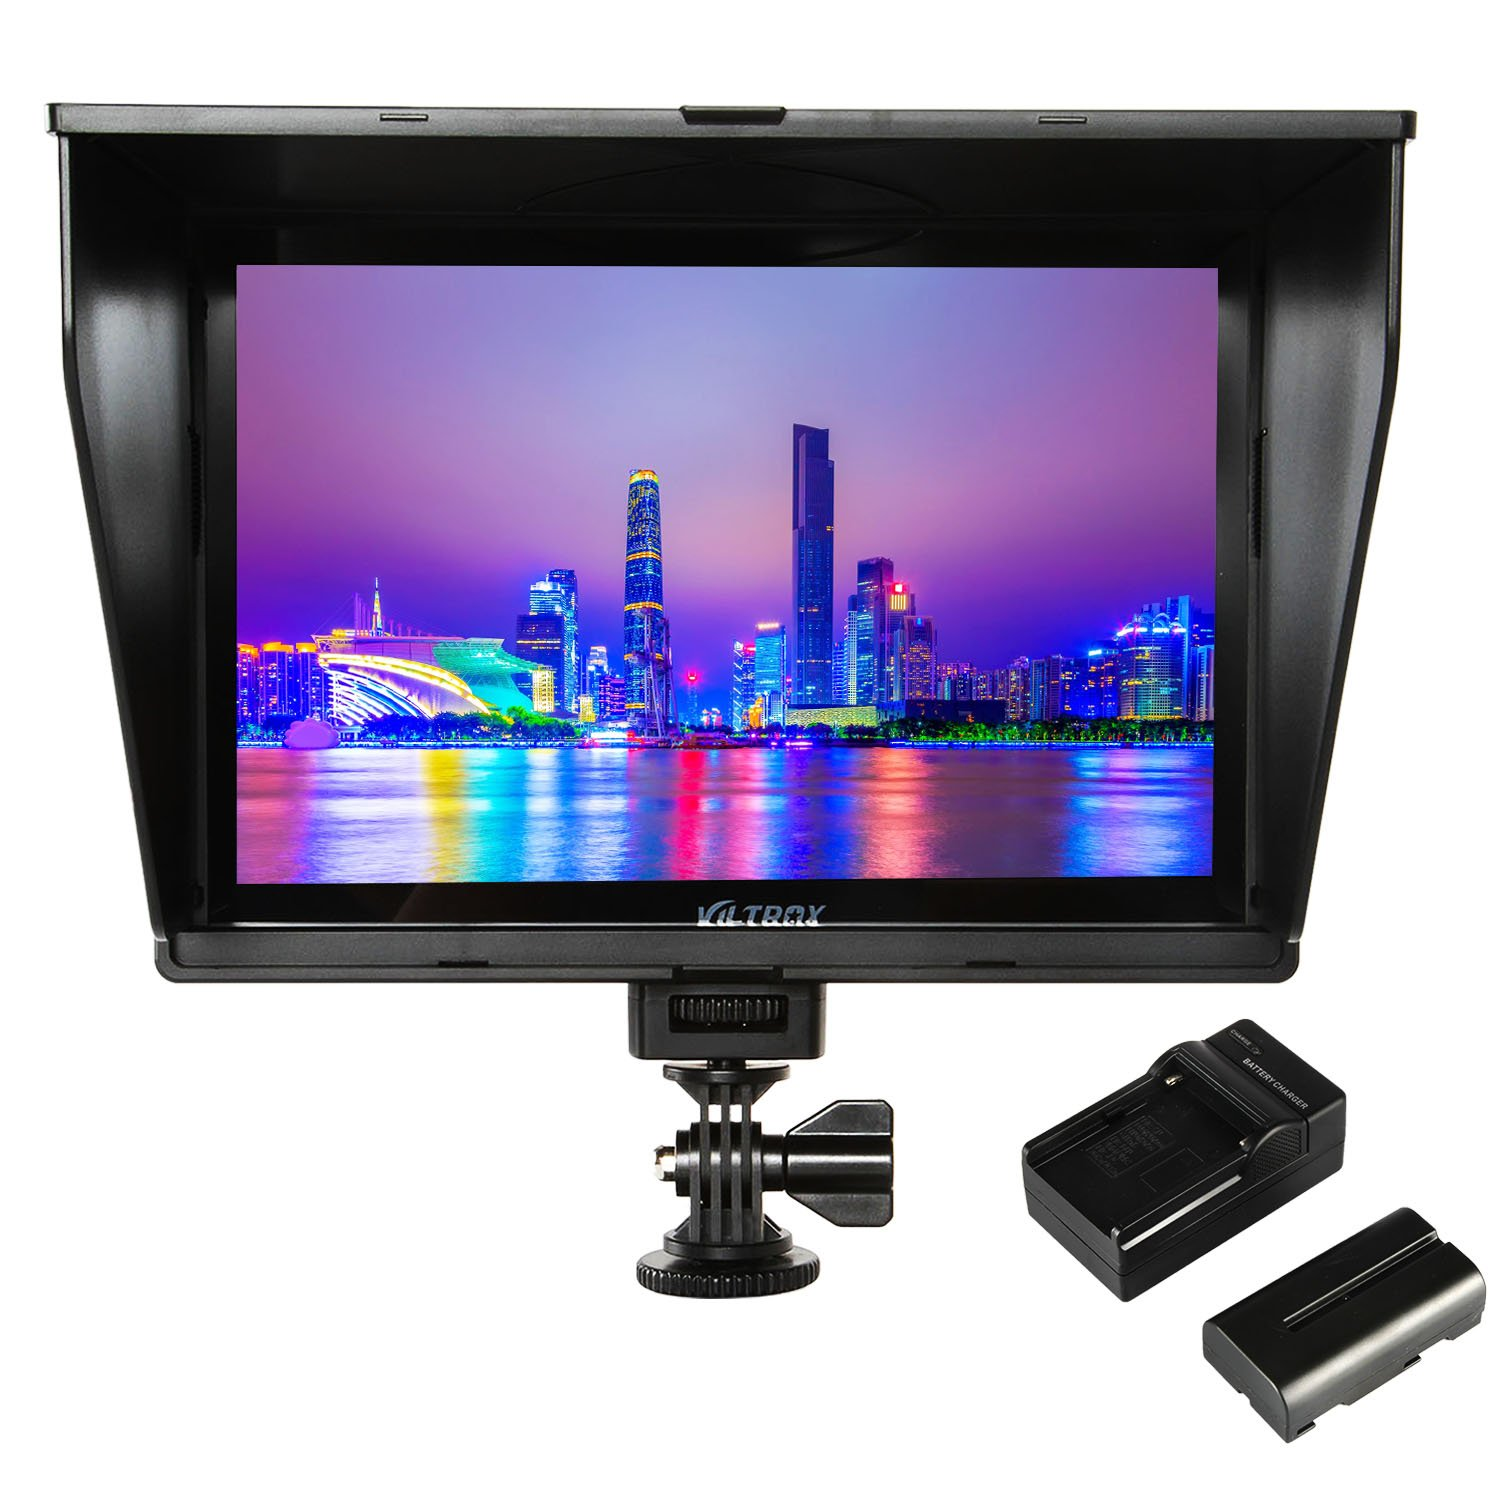 VILTROX DC-90HD 4K HDMI Monitor Full HD 1920x1200 IPS 8.9'' Clip-on LCD Camera Video Monitor Display HDMI AV Input for Canon Nikon DSLR BMPCC, Battery with Charger(Included) by VILTROX